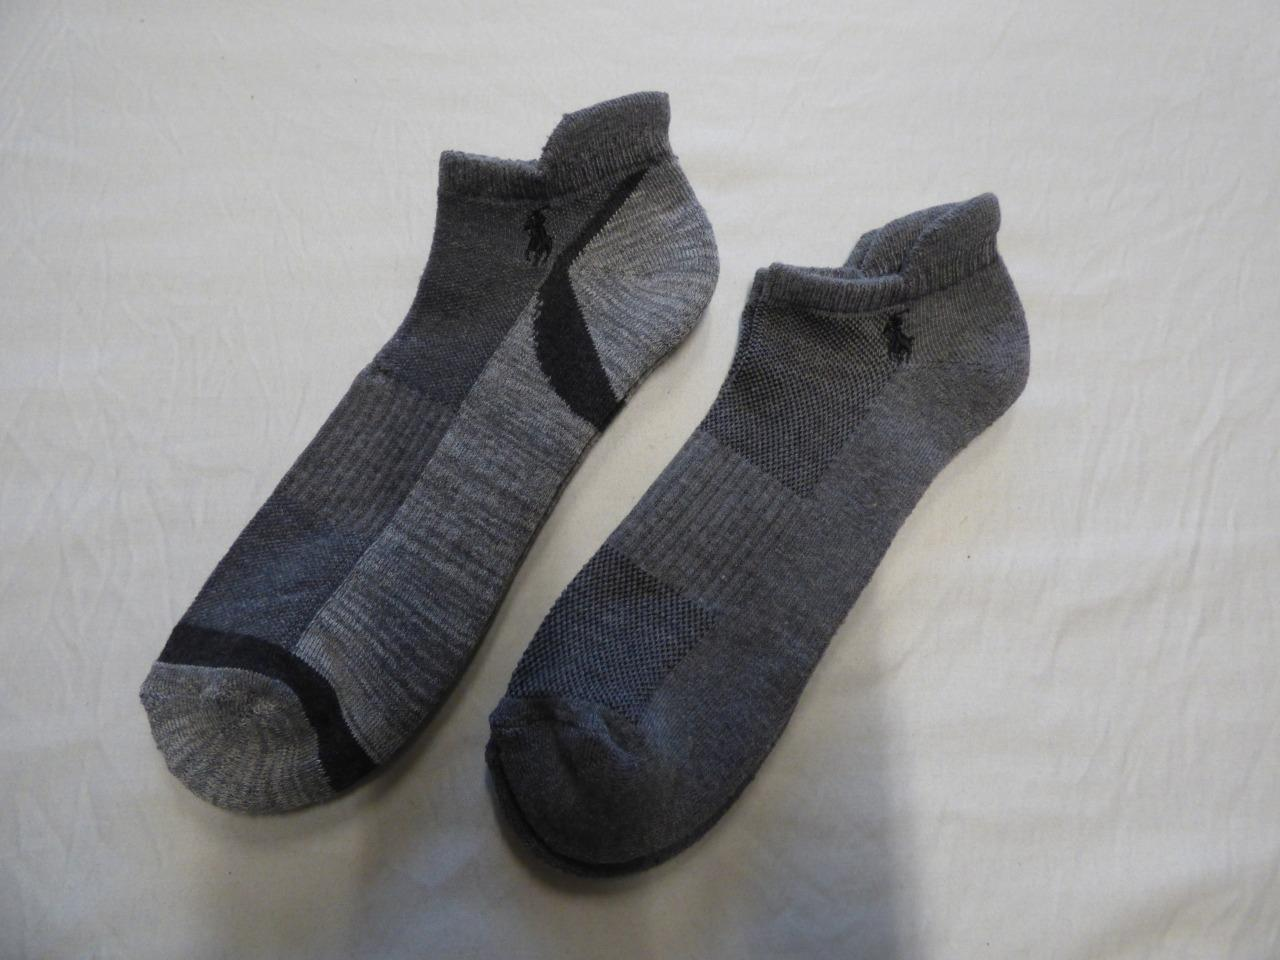 Polo Ralph Lauren 2 Pairs of Classic Sport Arch Support Men's Socks, Gray